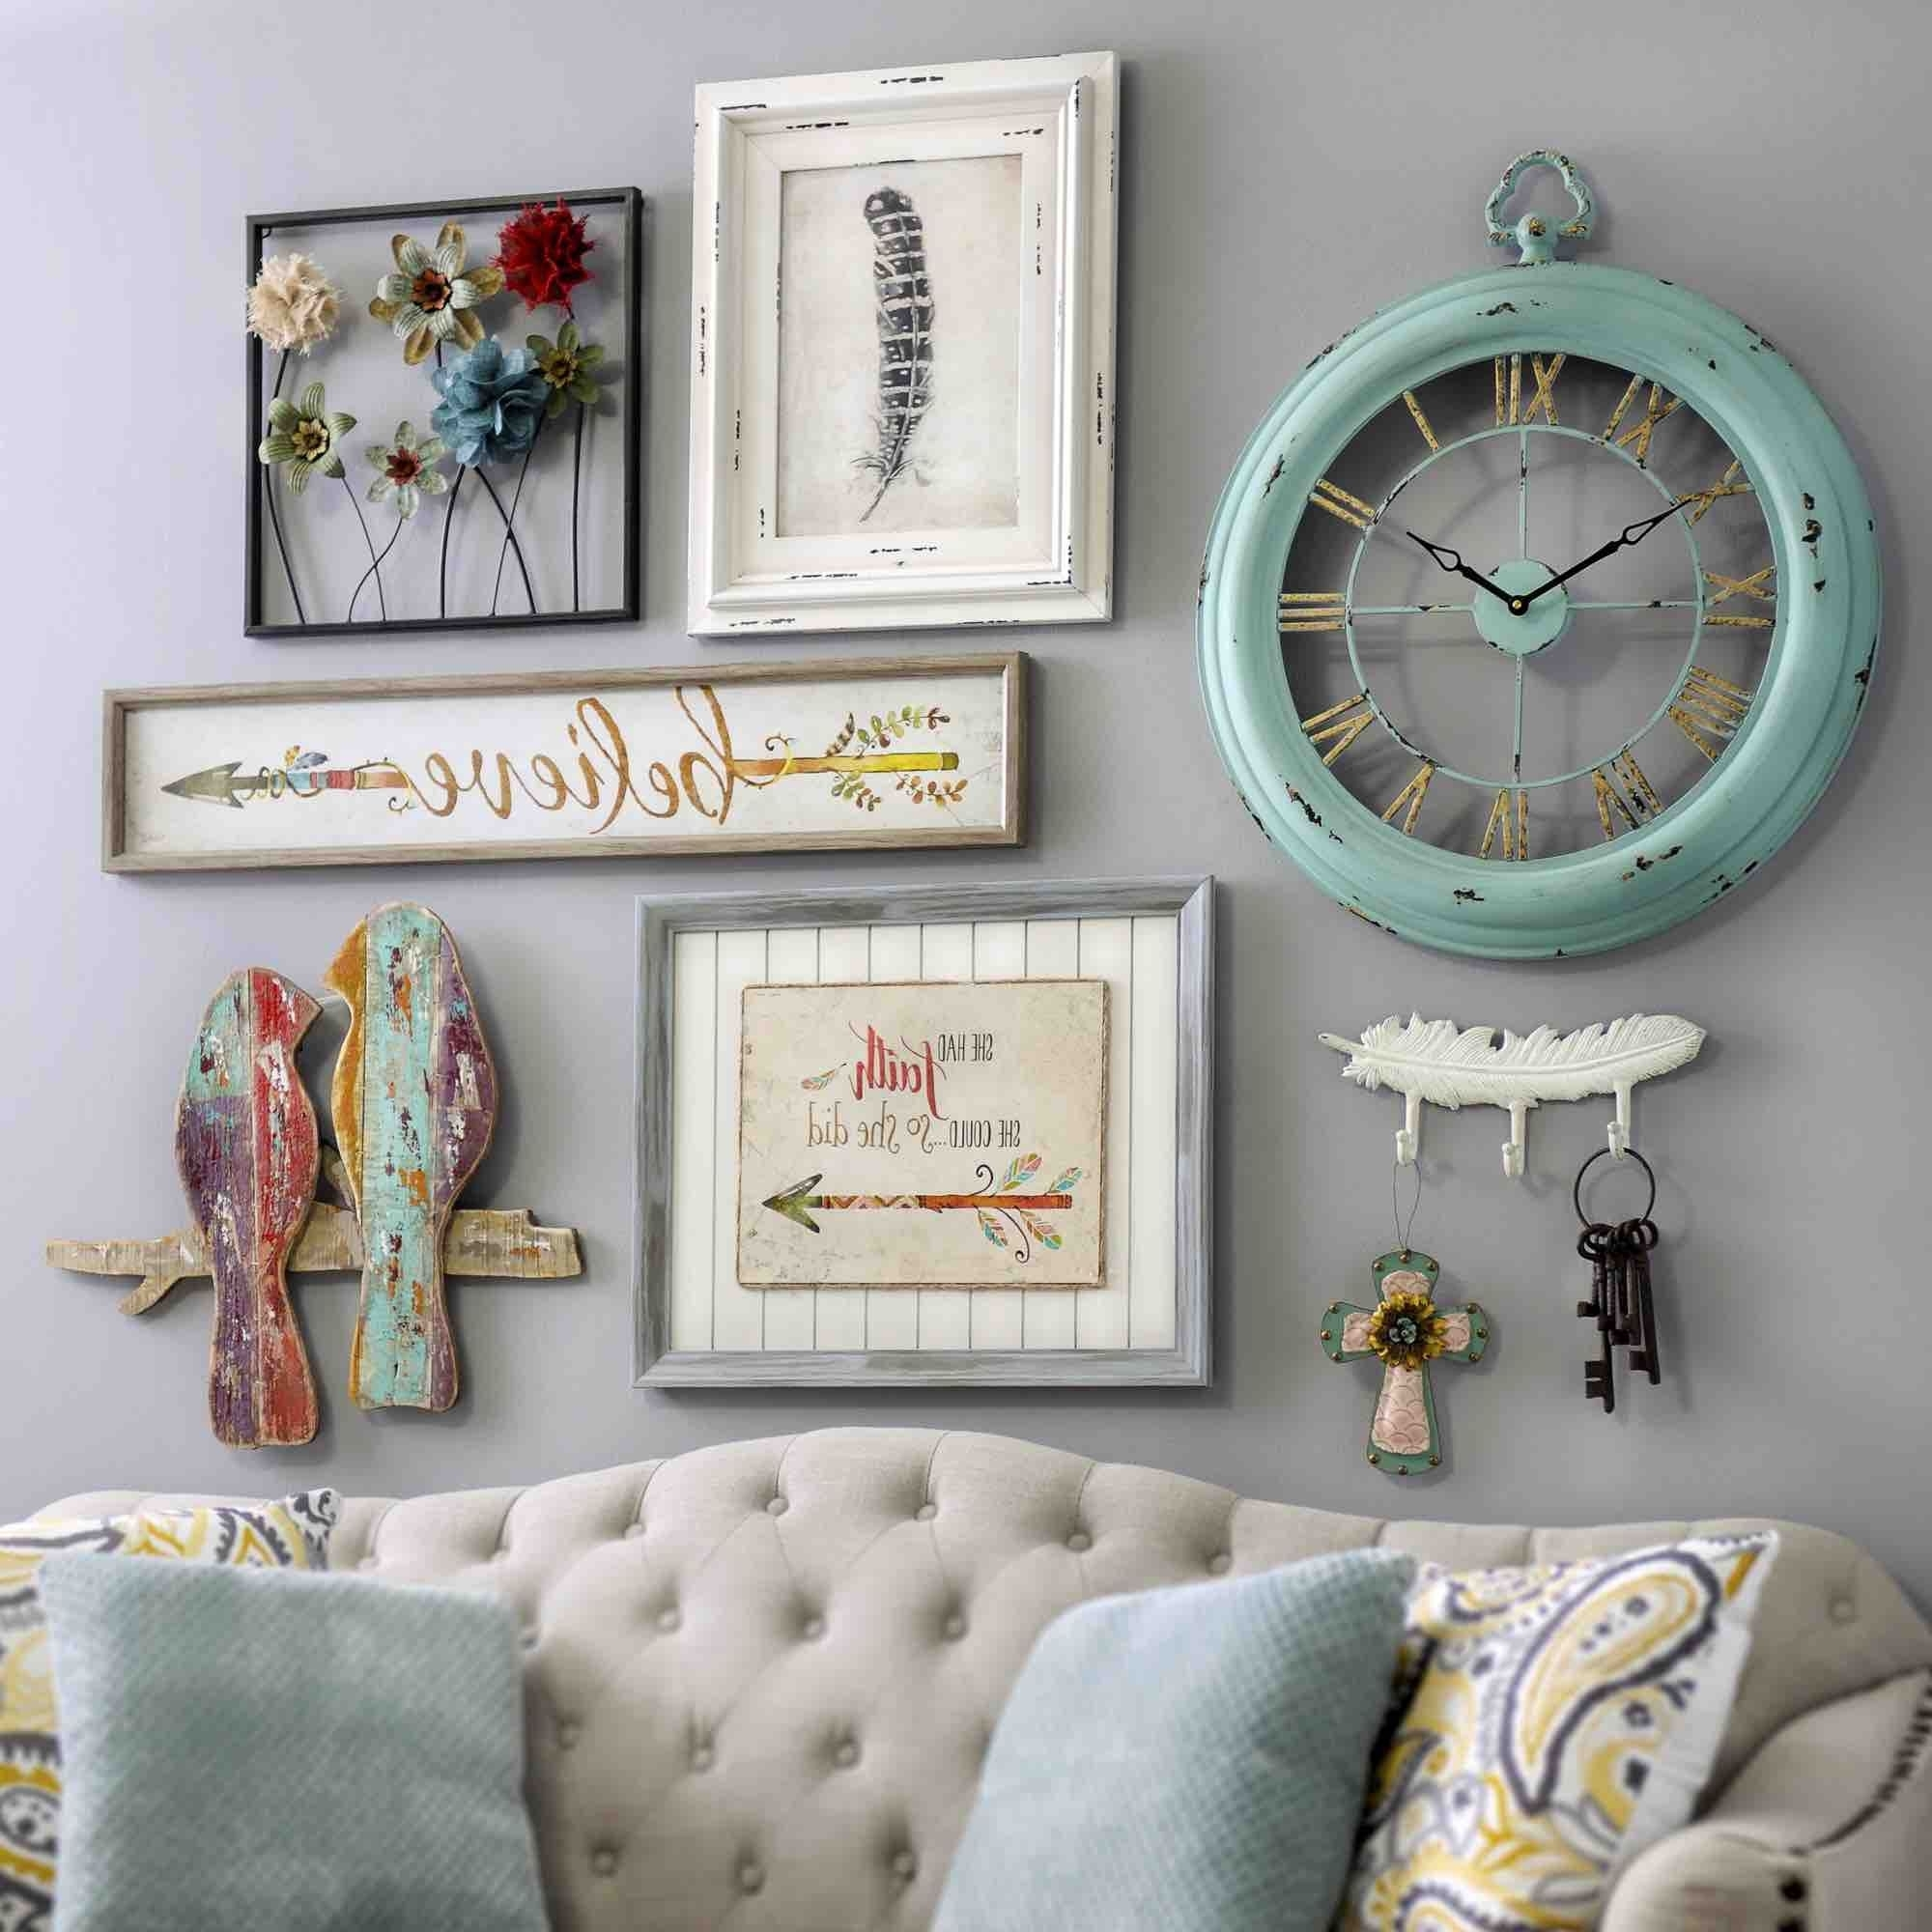 2018 Vintage Wall Accents For Bring A Shabby Chic Charm To Your Homeadding Pieces Of Wall (View 4 of 15)